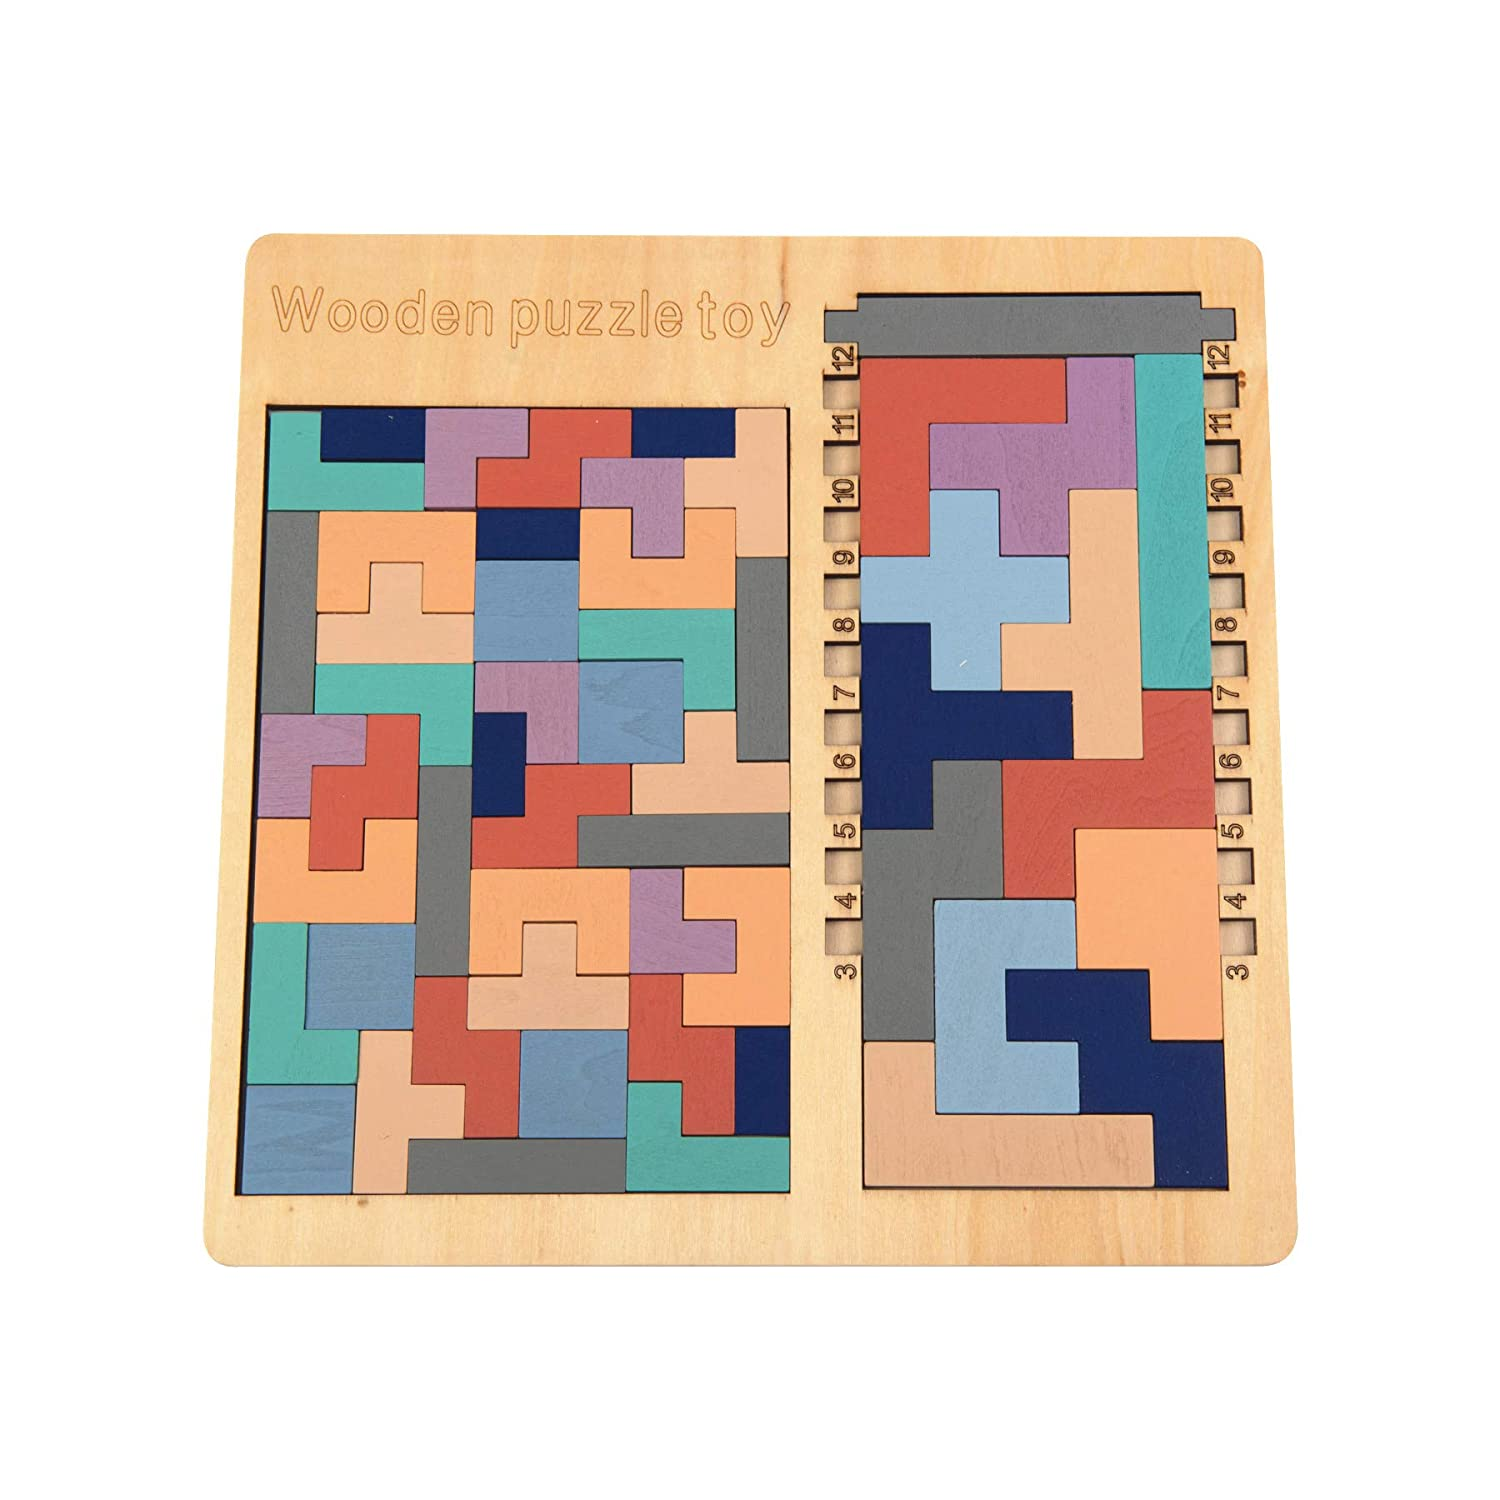 Zoostliss Wooden Tetris Puzzle Brain Teasers Toy Tangram Jigsaw Intelligence Colorful 3D Russian Blocks